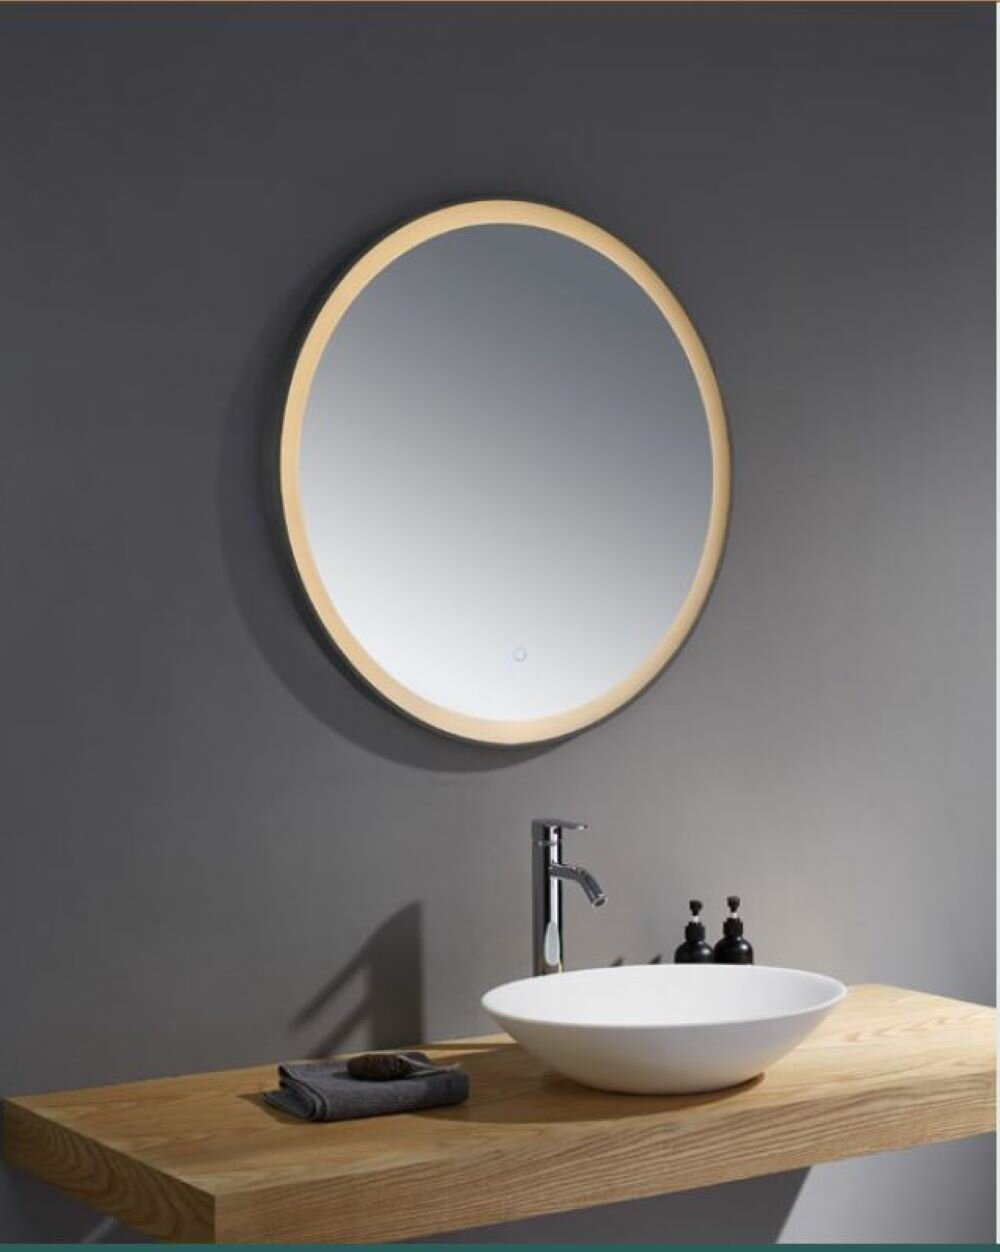 Metro Lane Bocanegra Fog Free Bathroom Mirror Wayfair Co Uk